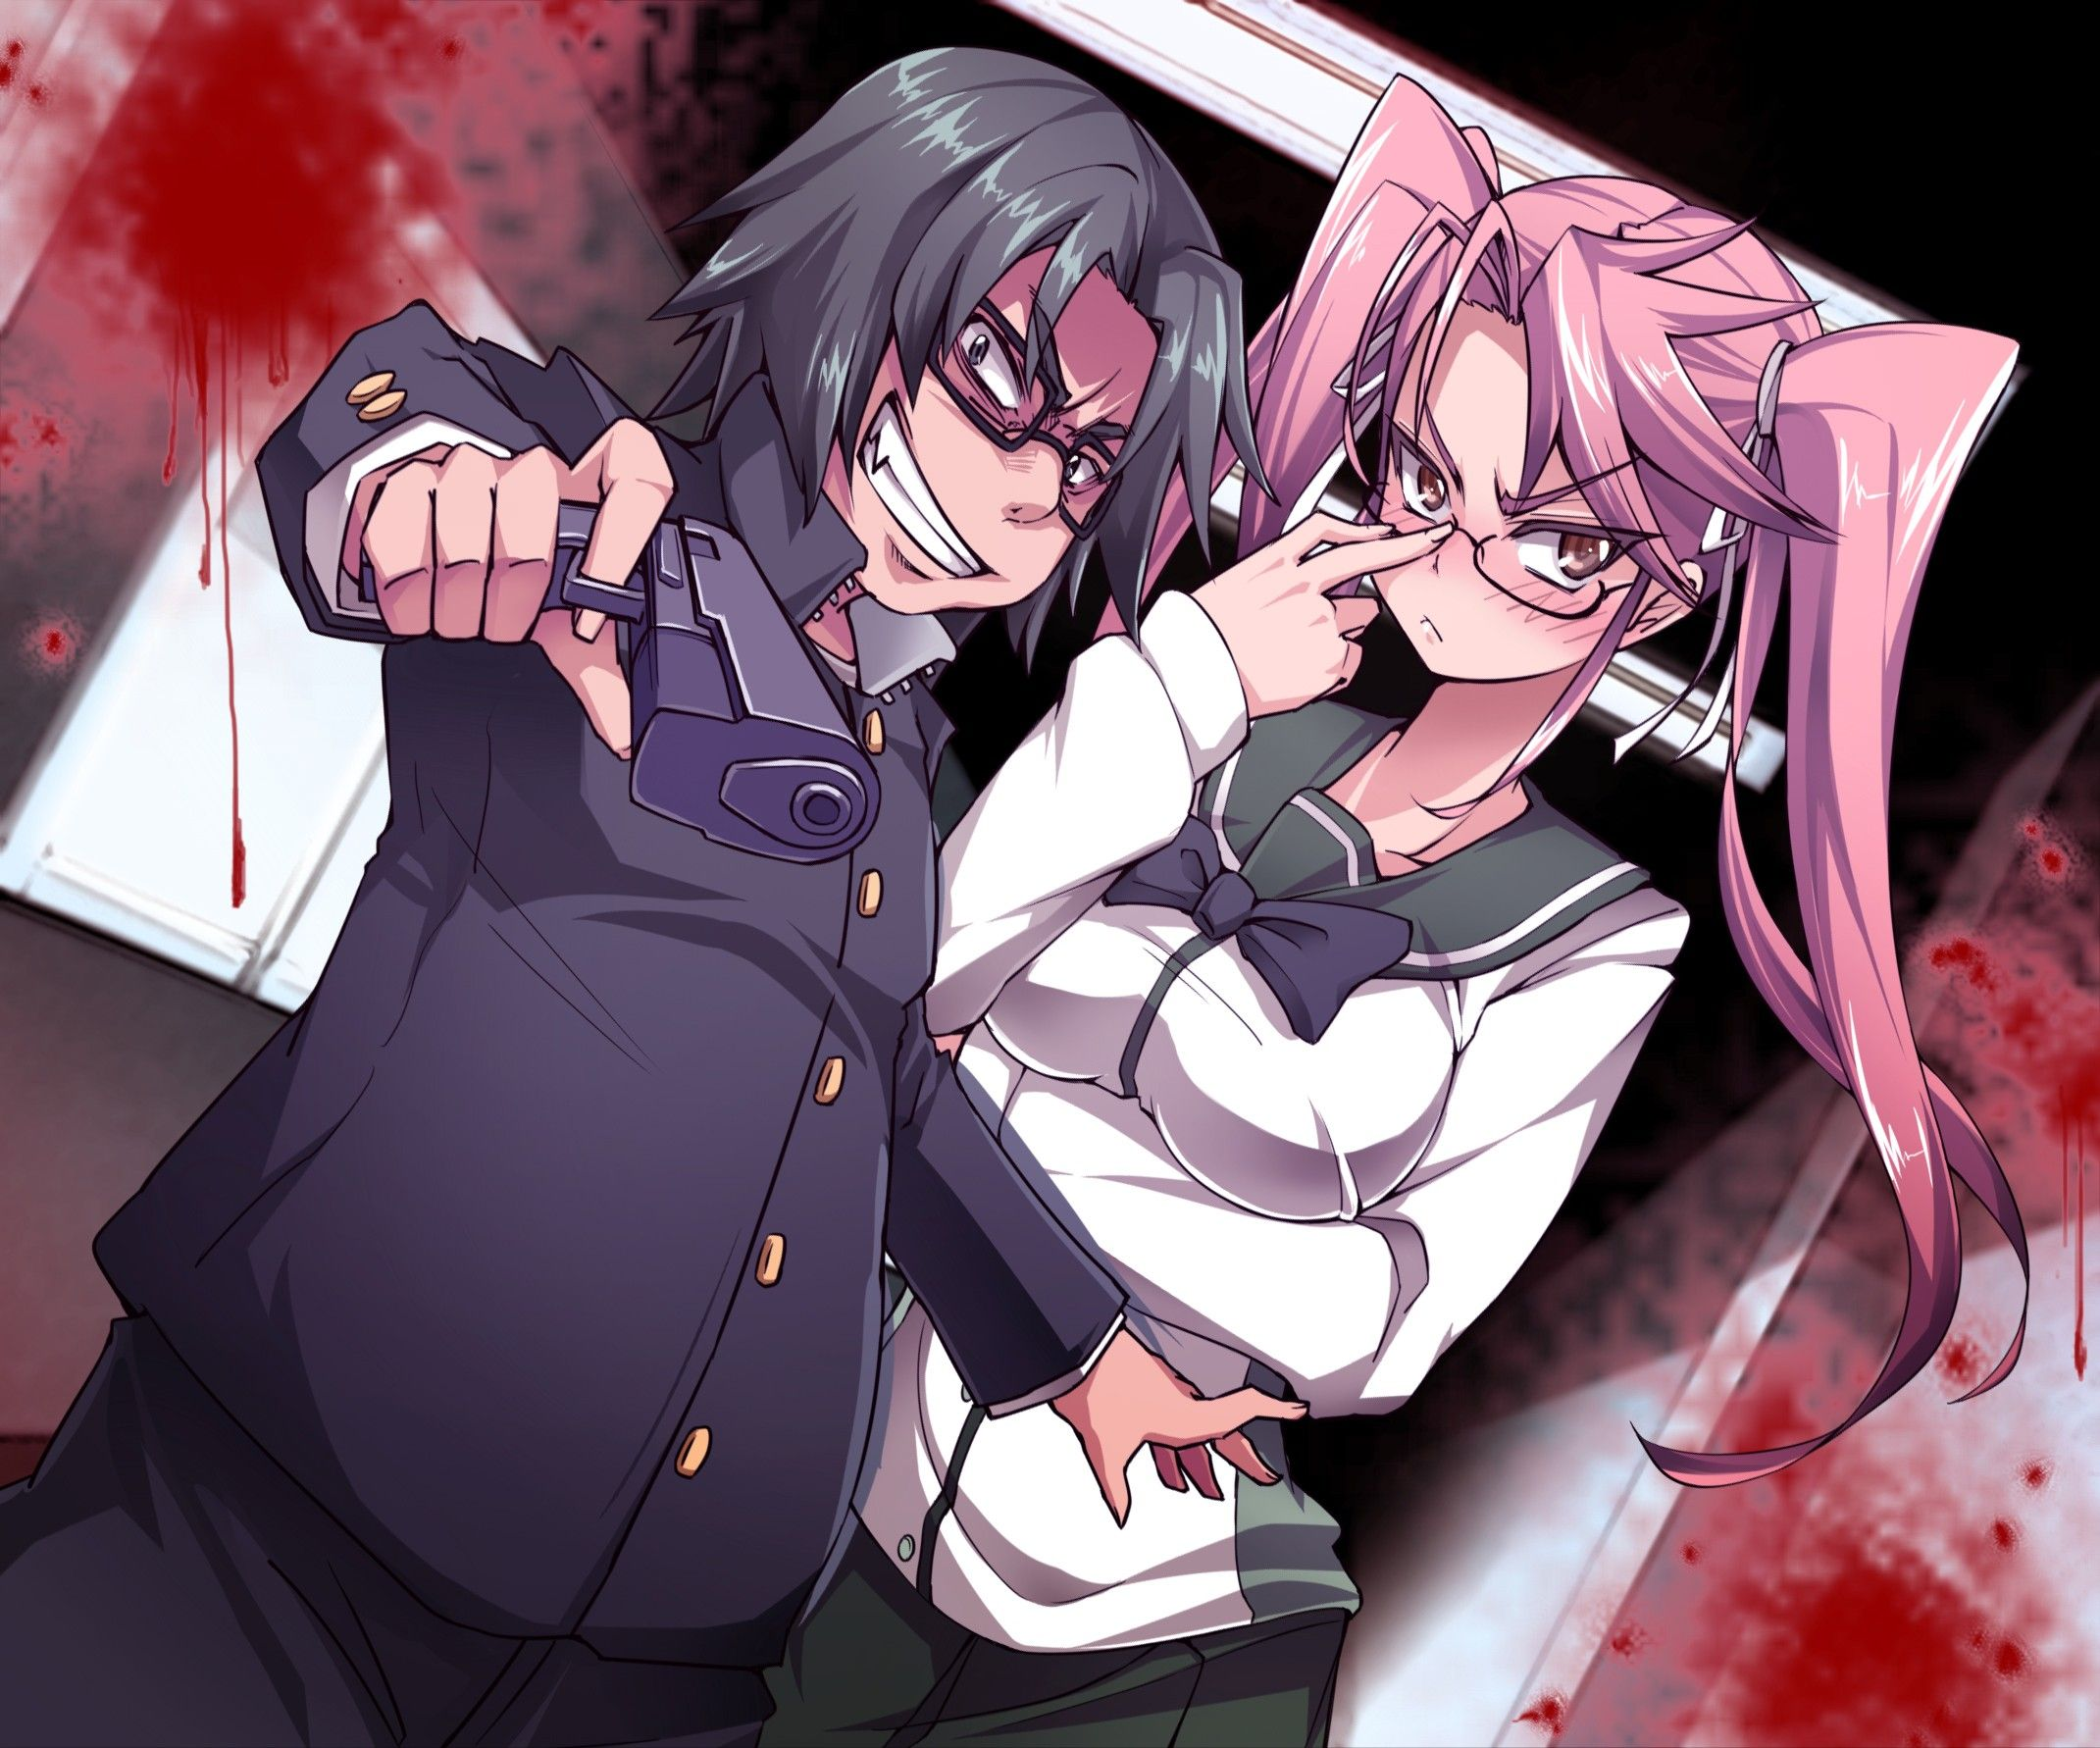 Anime Highschool Of The Dead Kota Hirano Saya Takagi Wallpaper